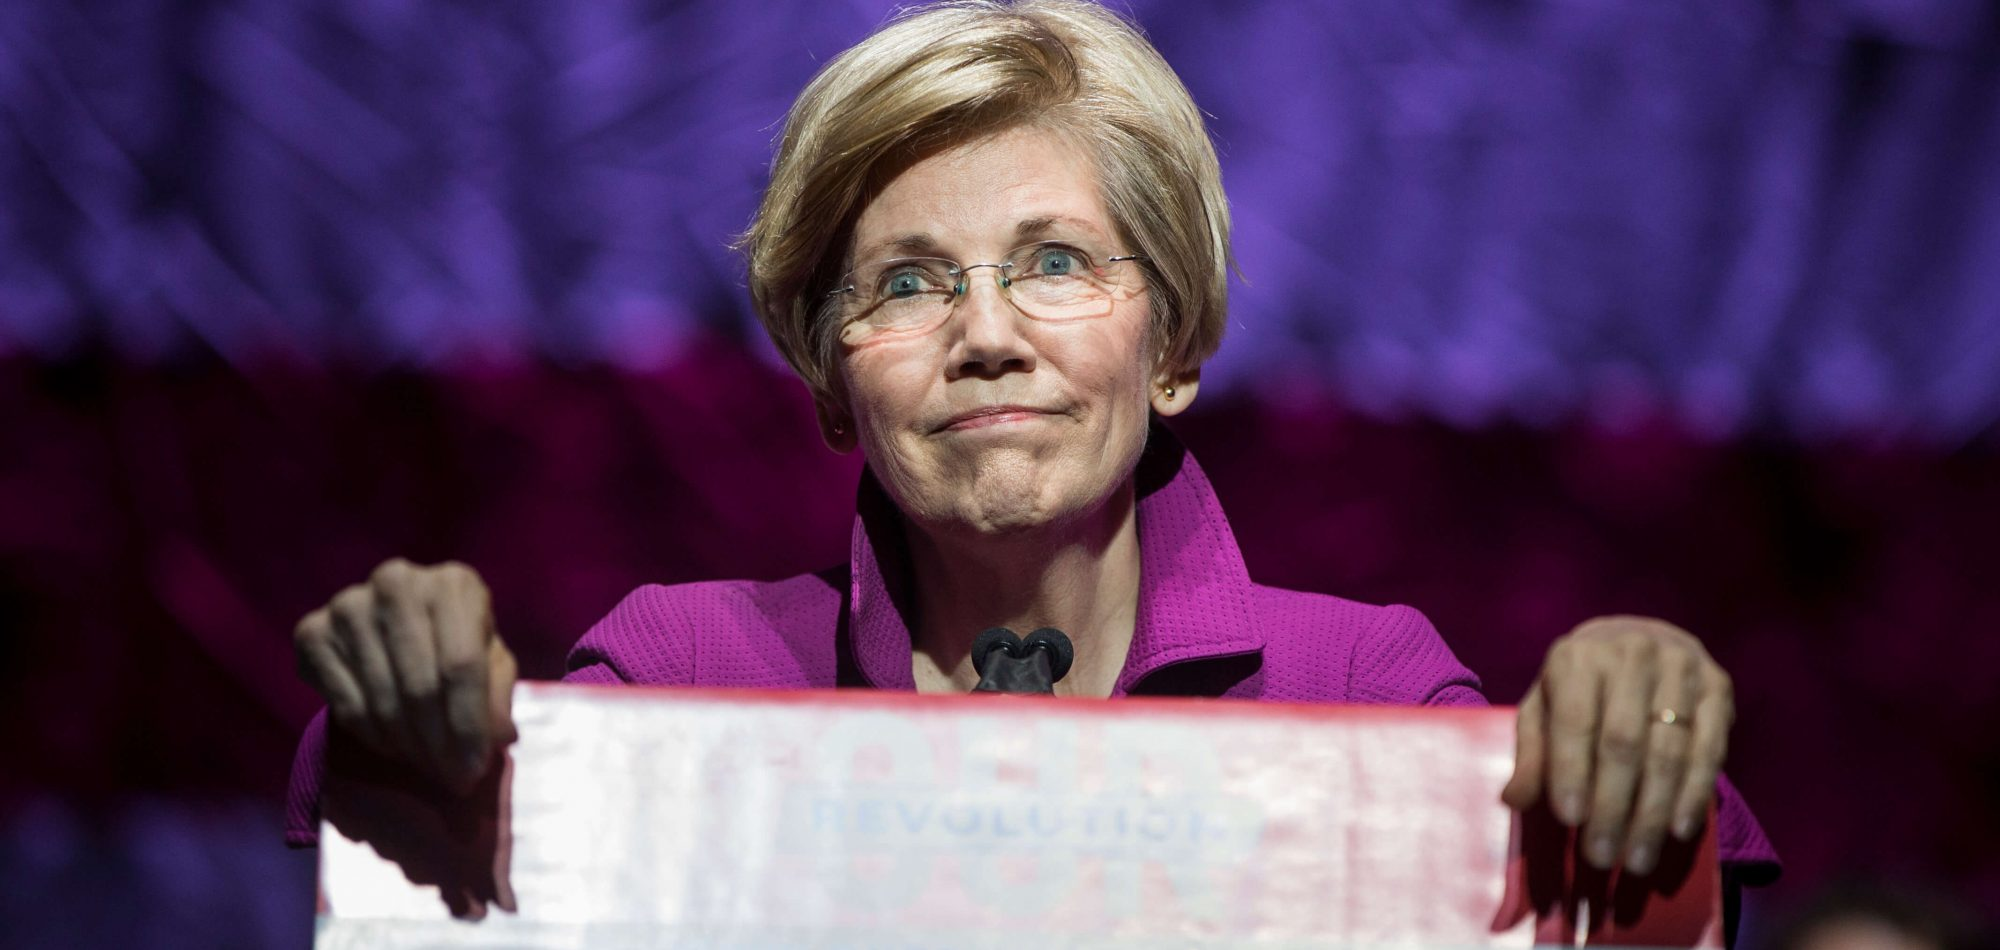 The 10 Signs That Point to an Elizabeth Warren Presidential Run in 2020